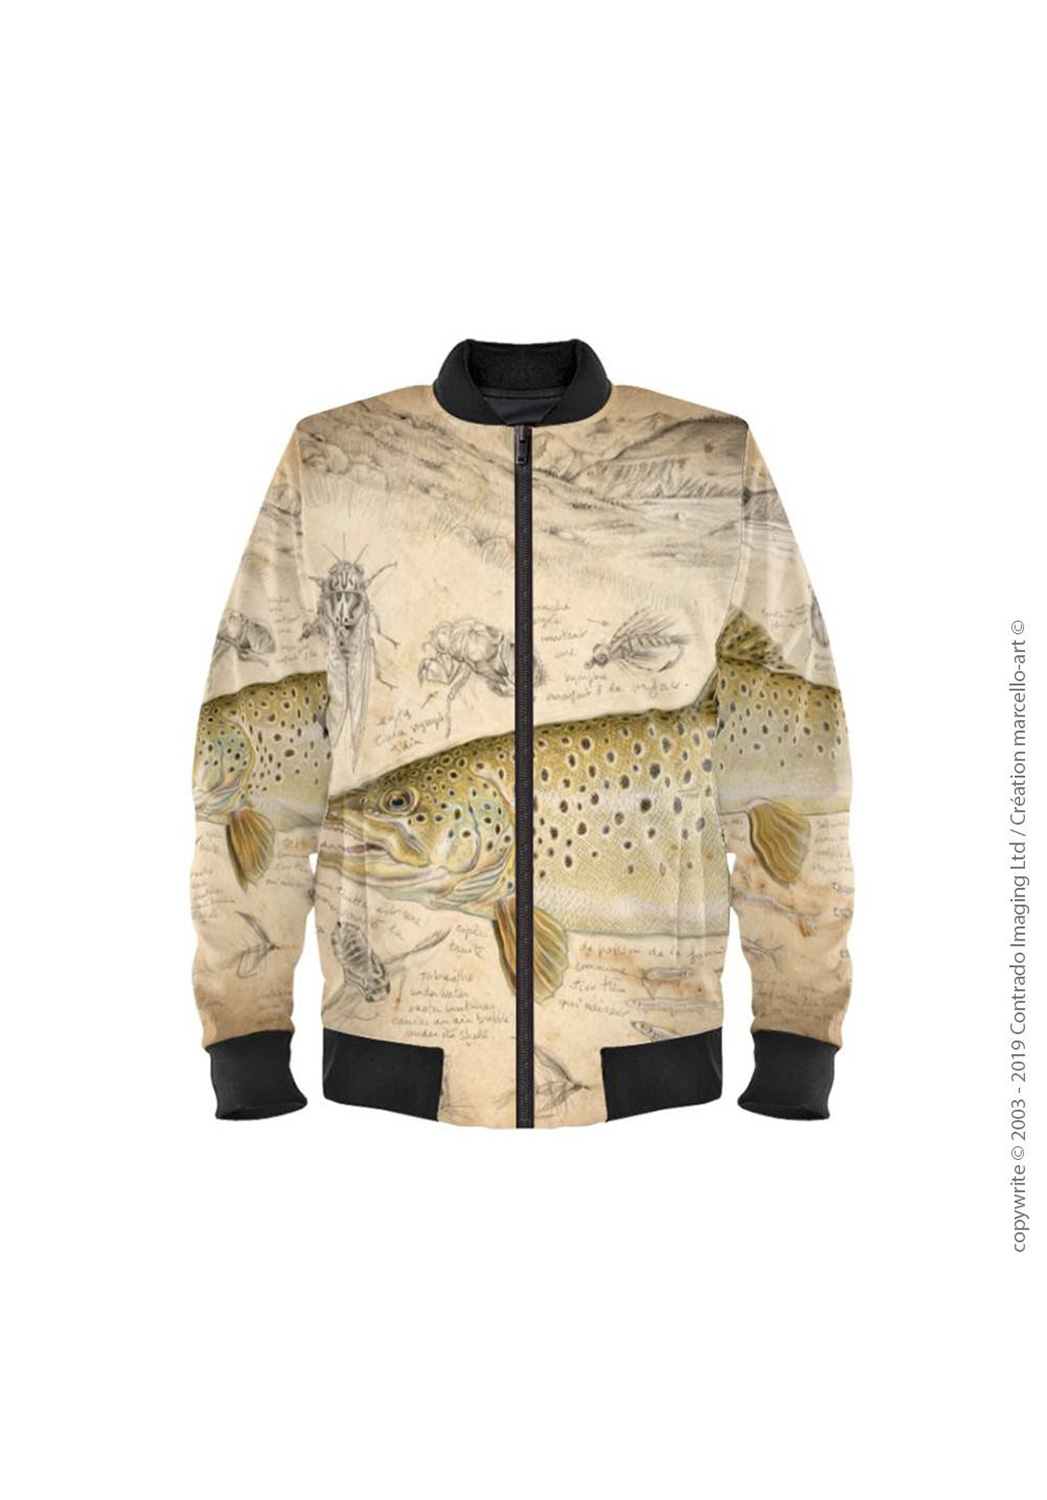 Marcello-art: Bombers Bomber 372 Brown trout